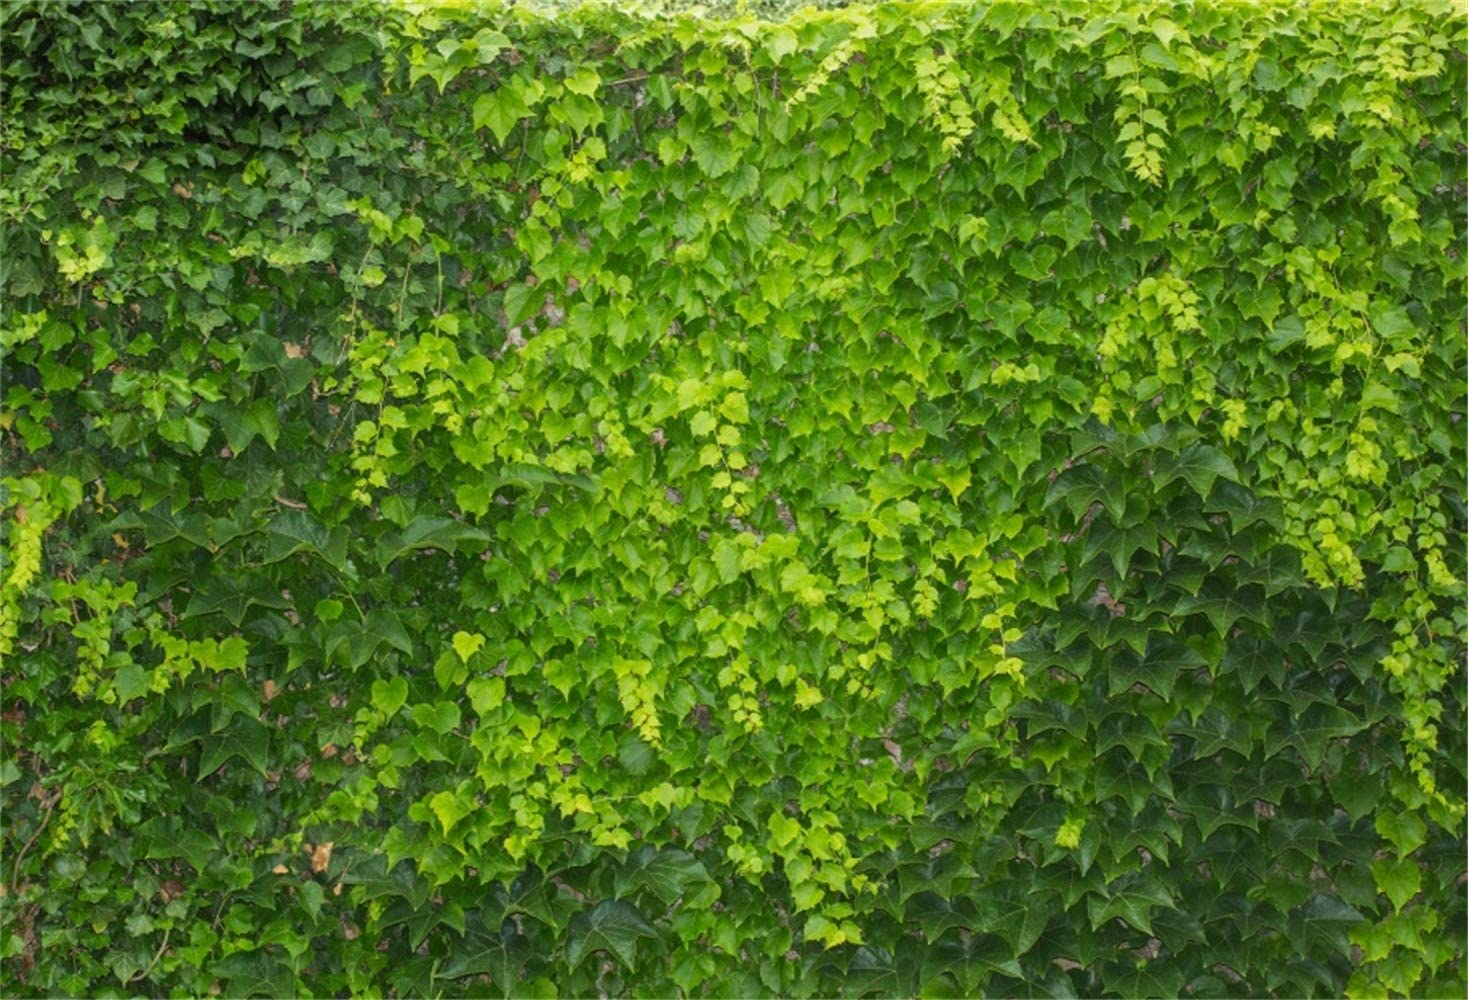 8x6.5ft Spring Vibrant Boston Ivy Wall Vinyl Photography Background Hedge Living Fence Topiary Foliage Backdrop Spring Scenic Landscape Wallpaper Theme Party Banner Studio